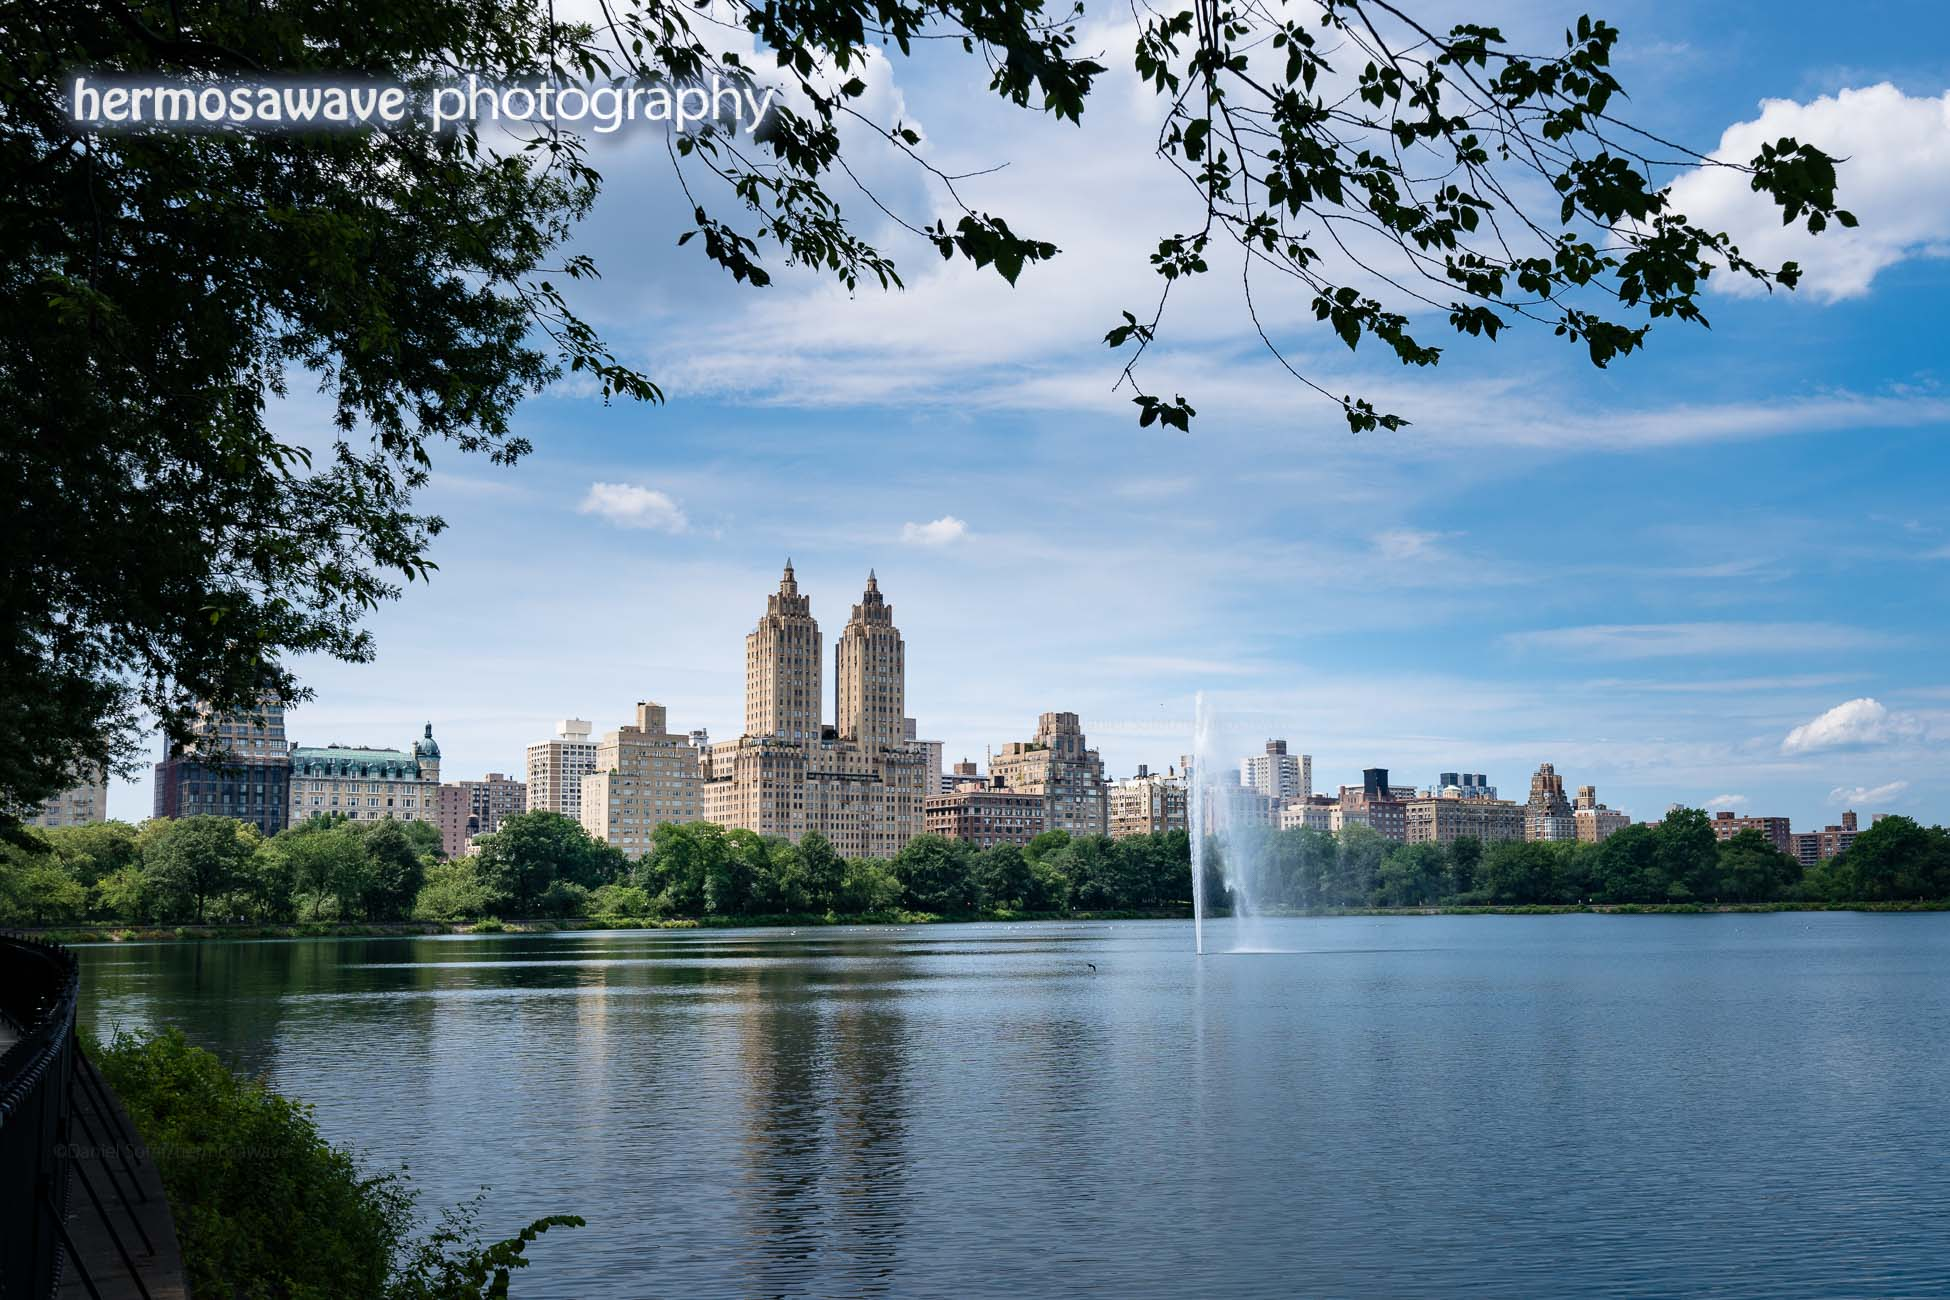 Afternoon in Central Park